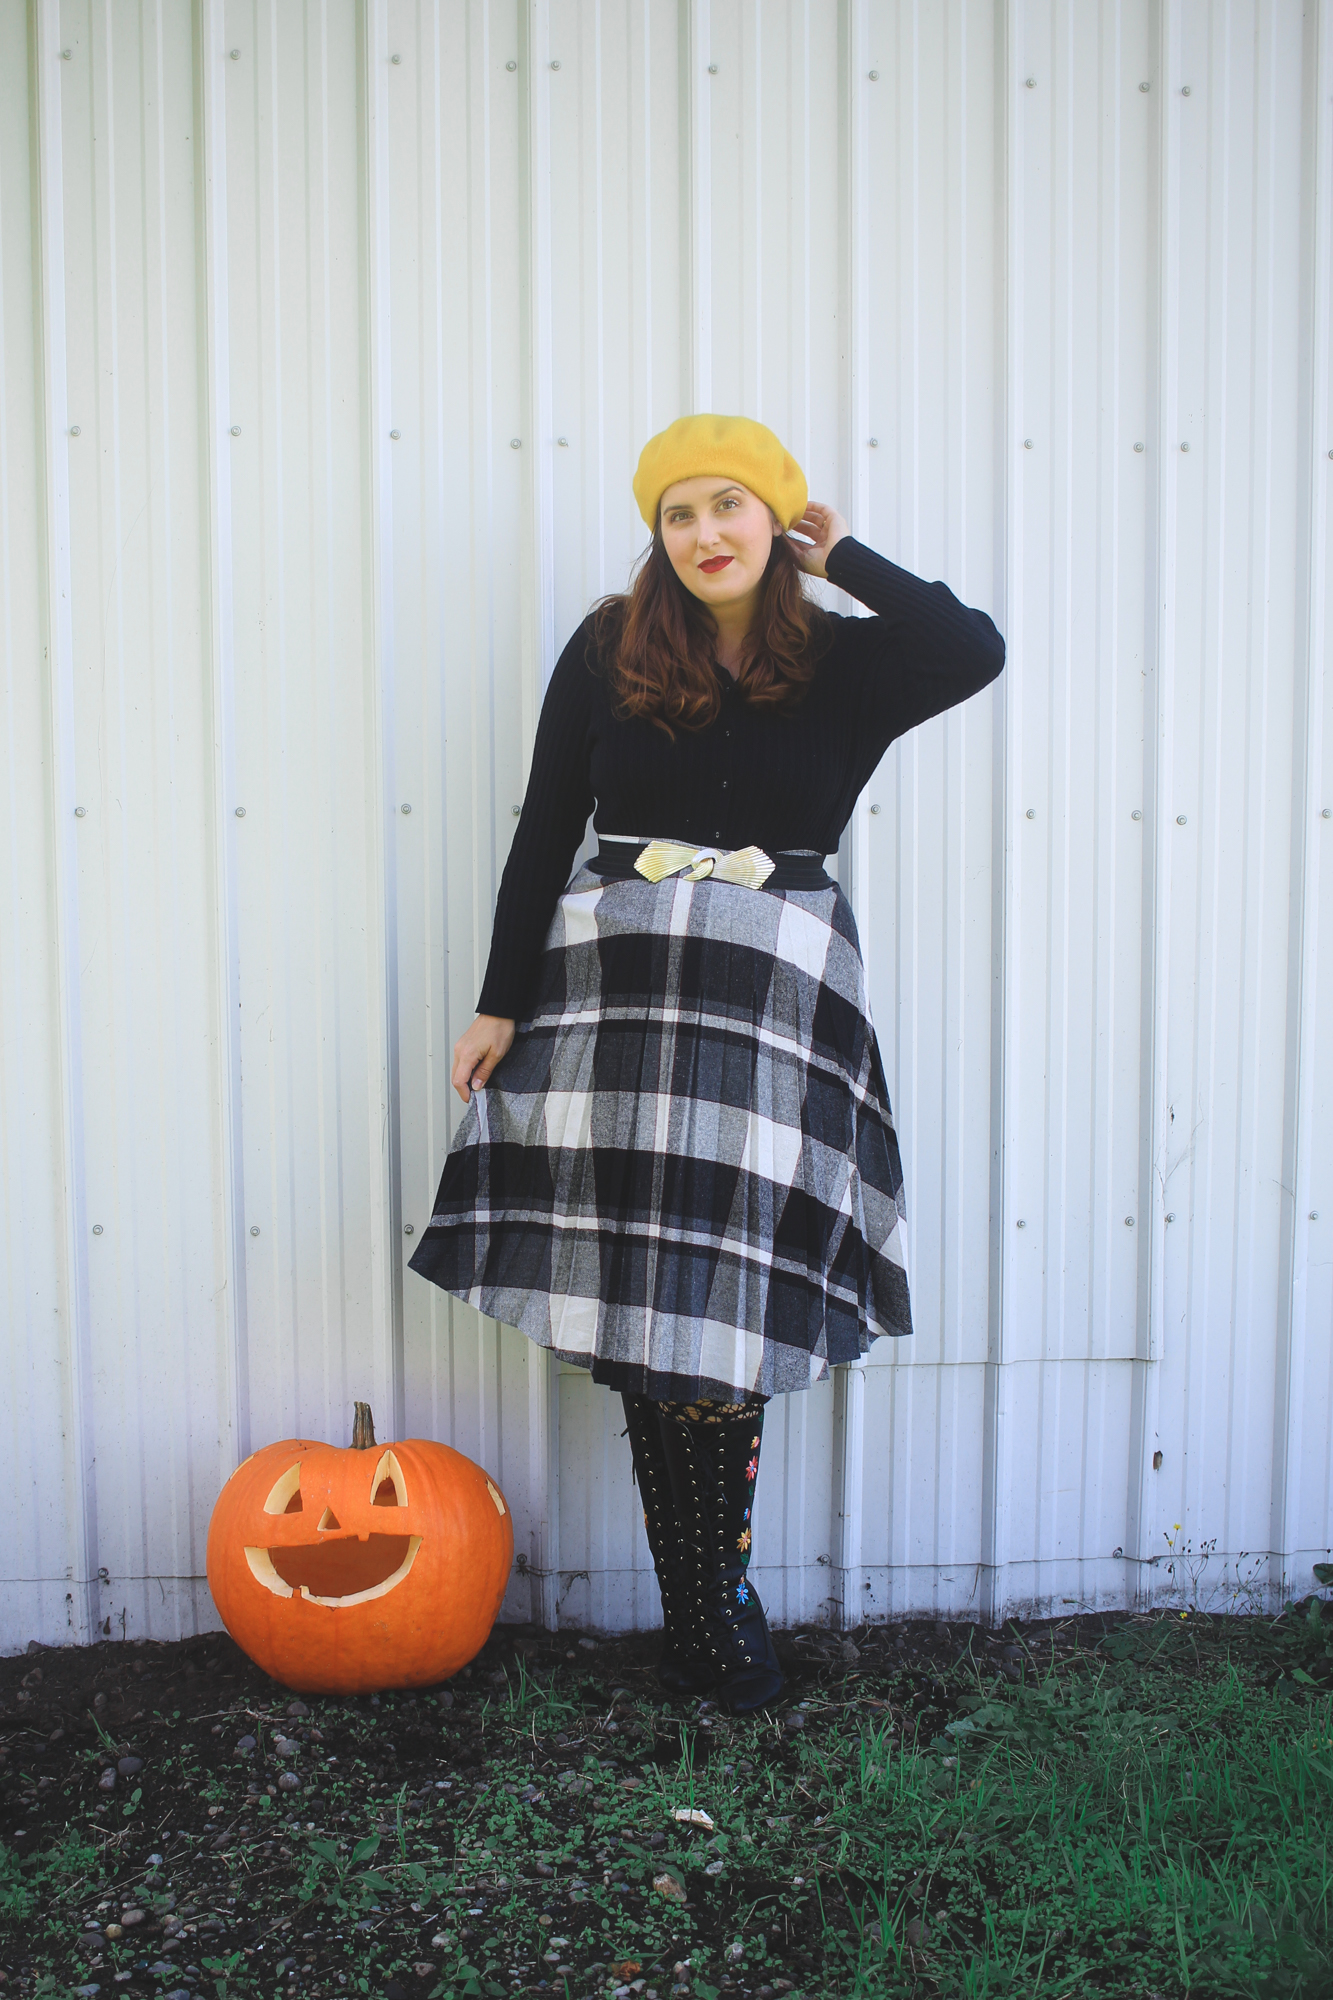 woman wearing a yellow beret and a plaid skirt